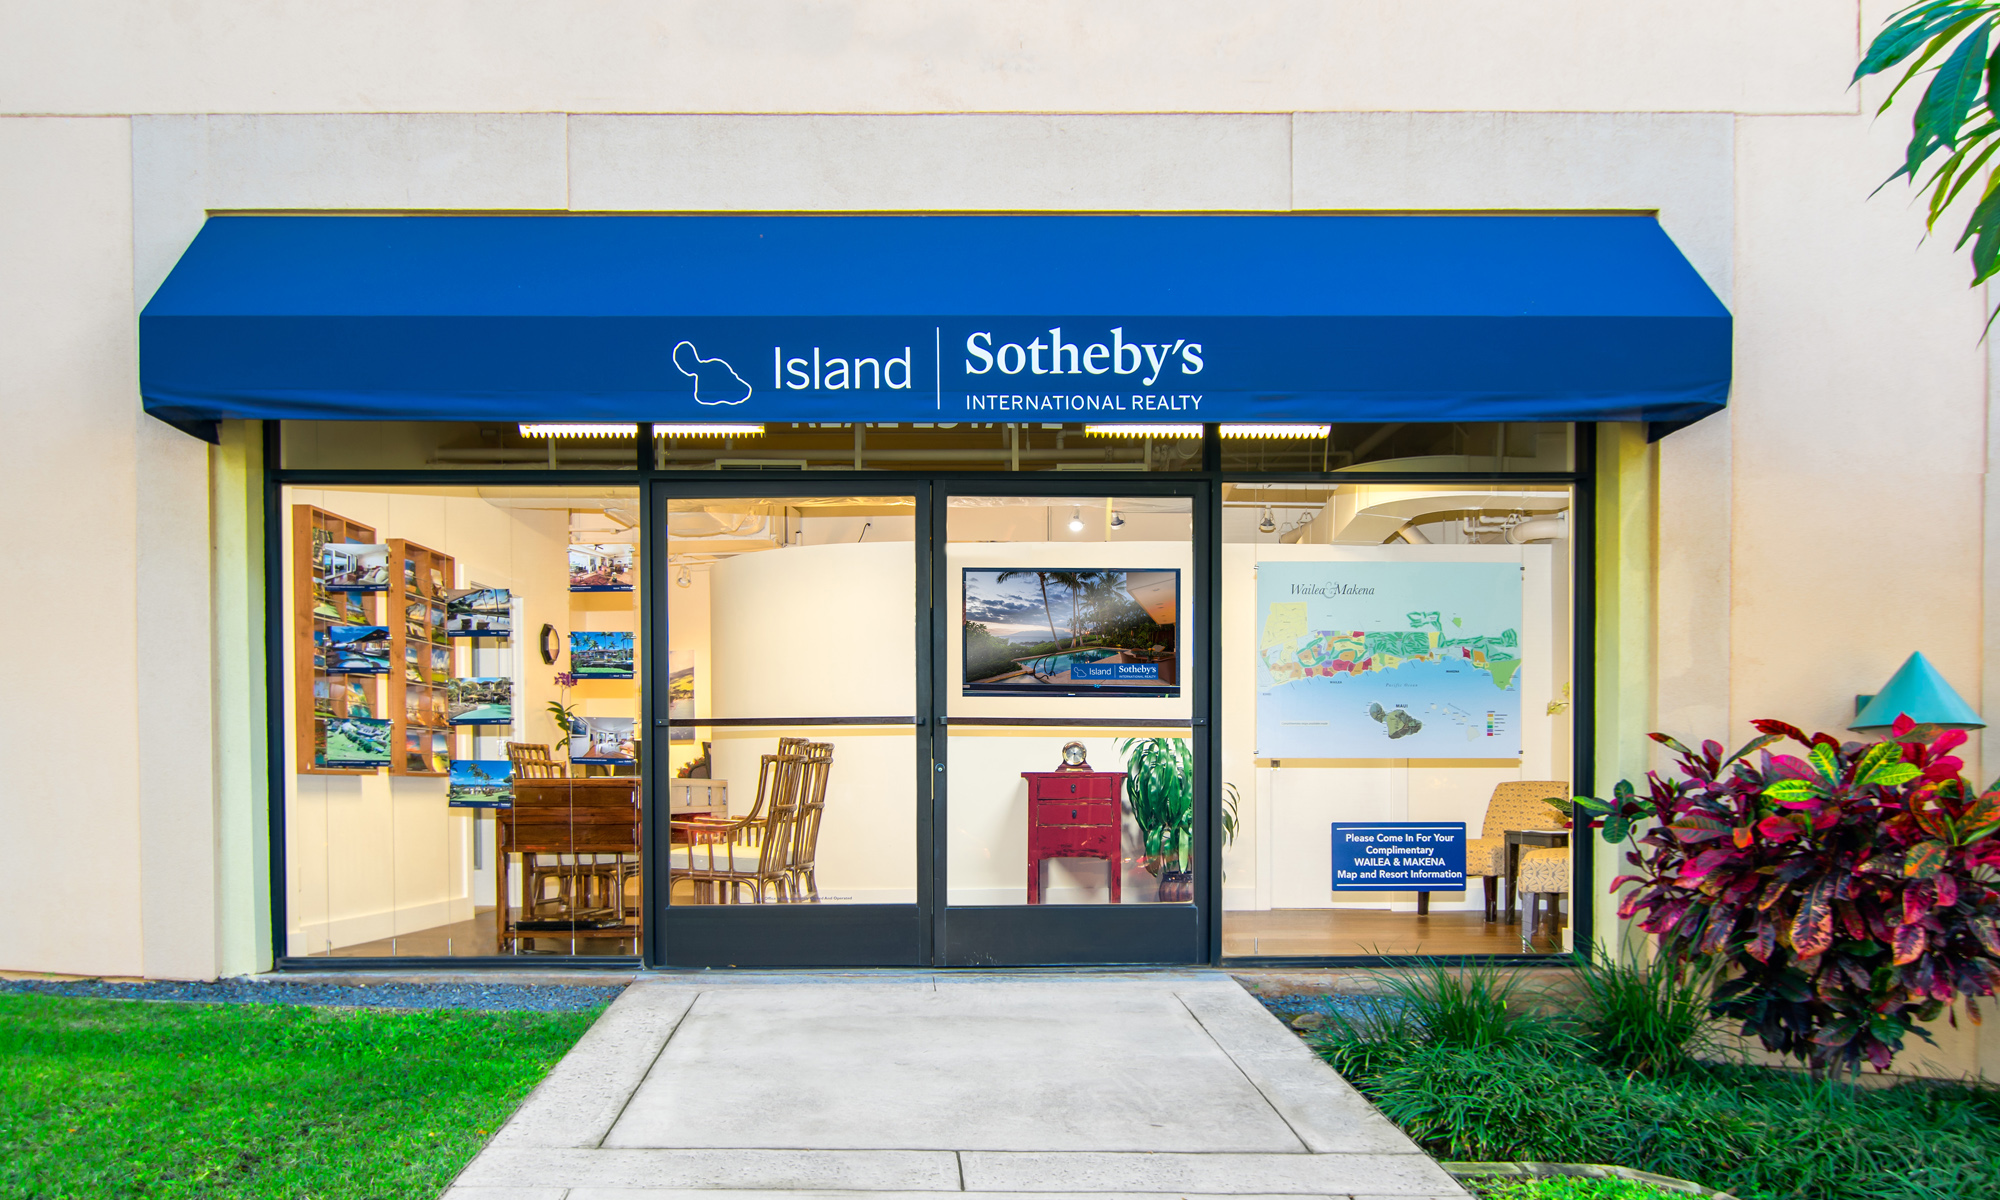 Island Sotheby's International Realty